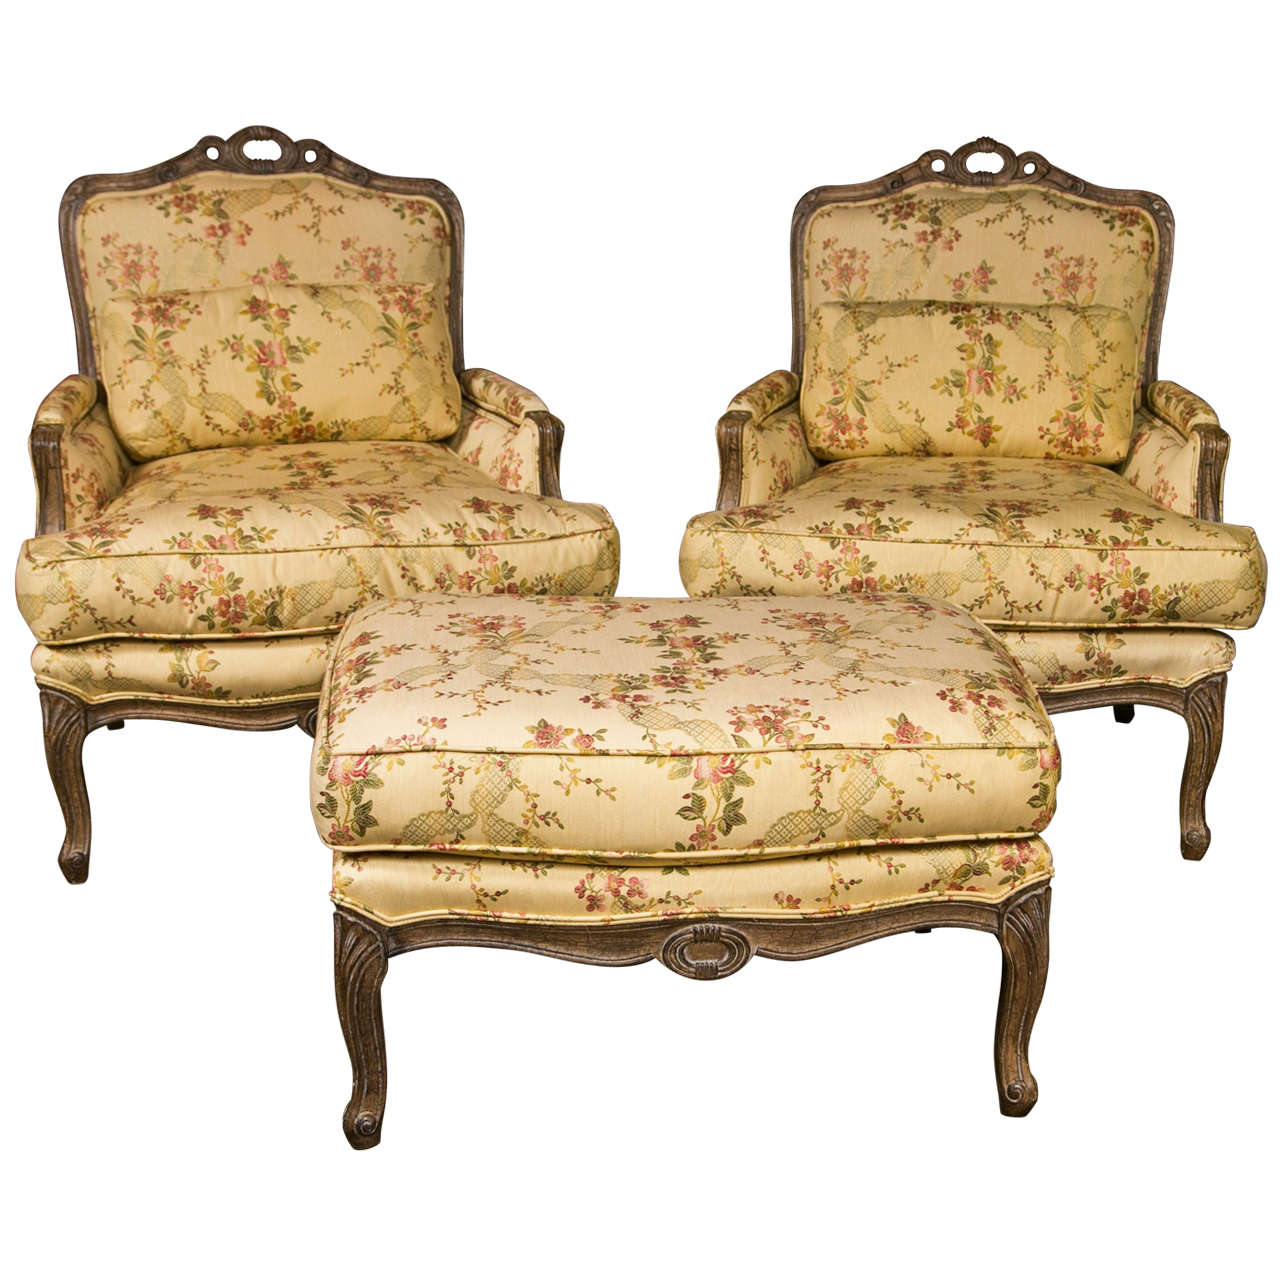 A Pair Of Period French Chairs With Missoni Fabric At 1stdibs: French Louis XV Style Duchesse Brisee By Jansen At 1stdibs